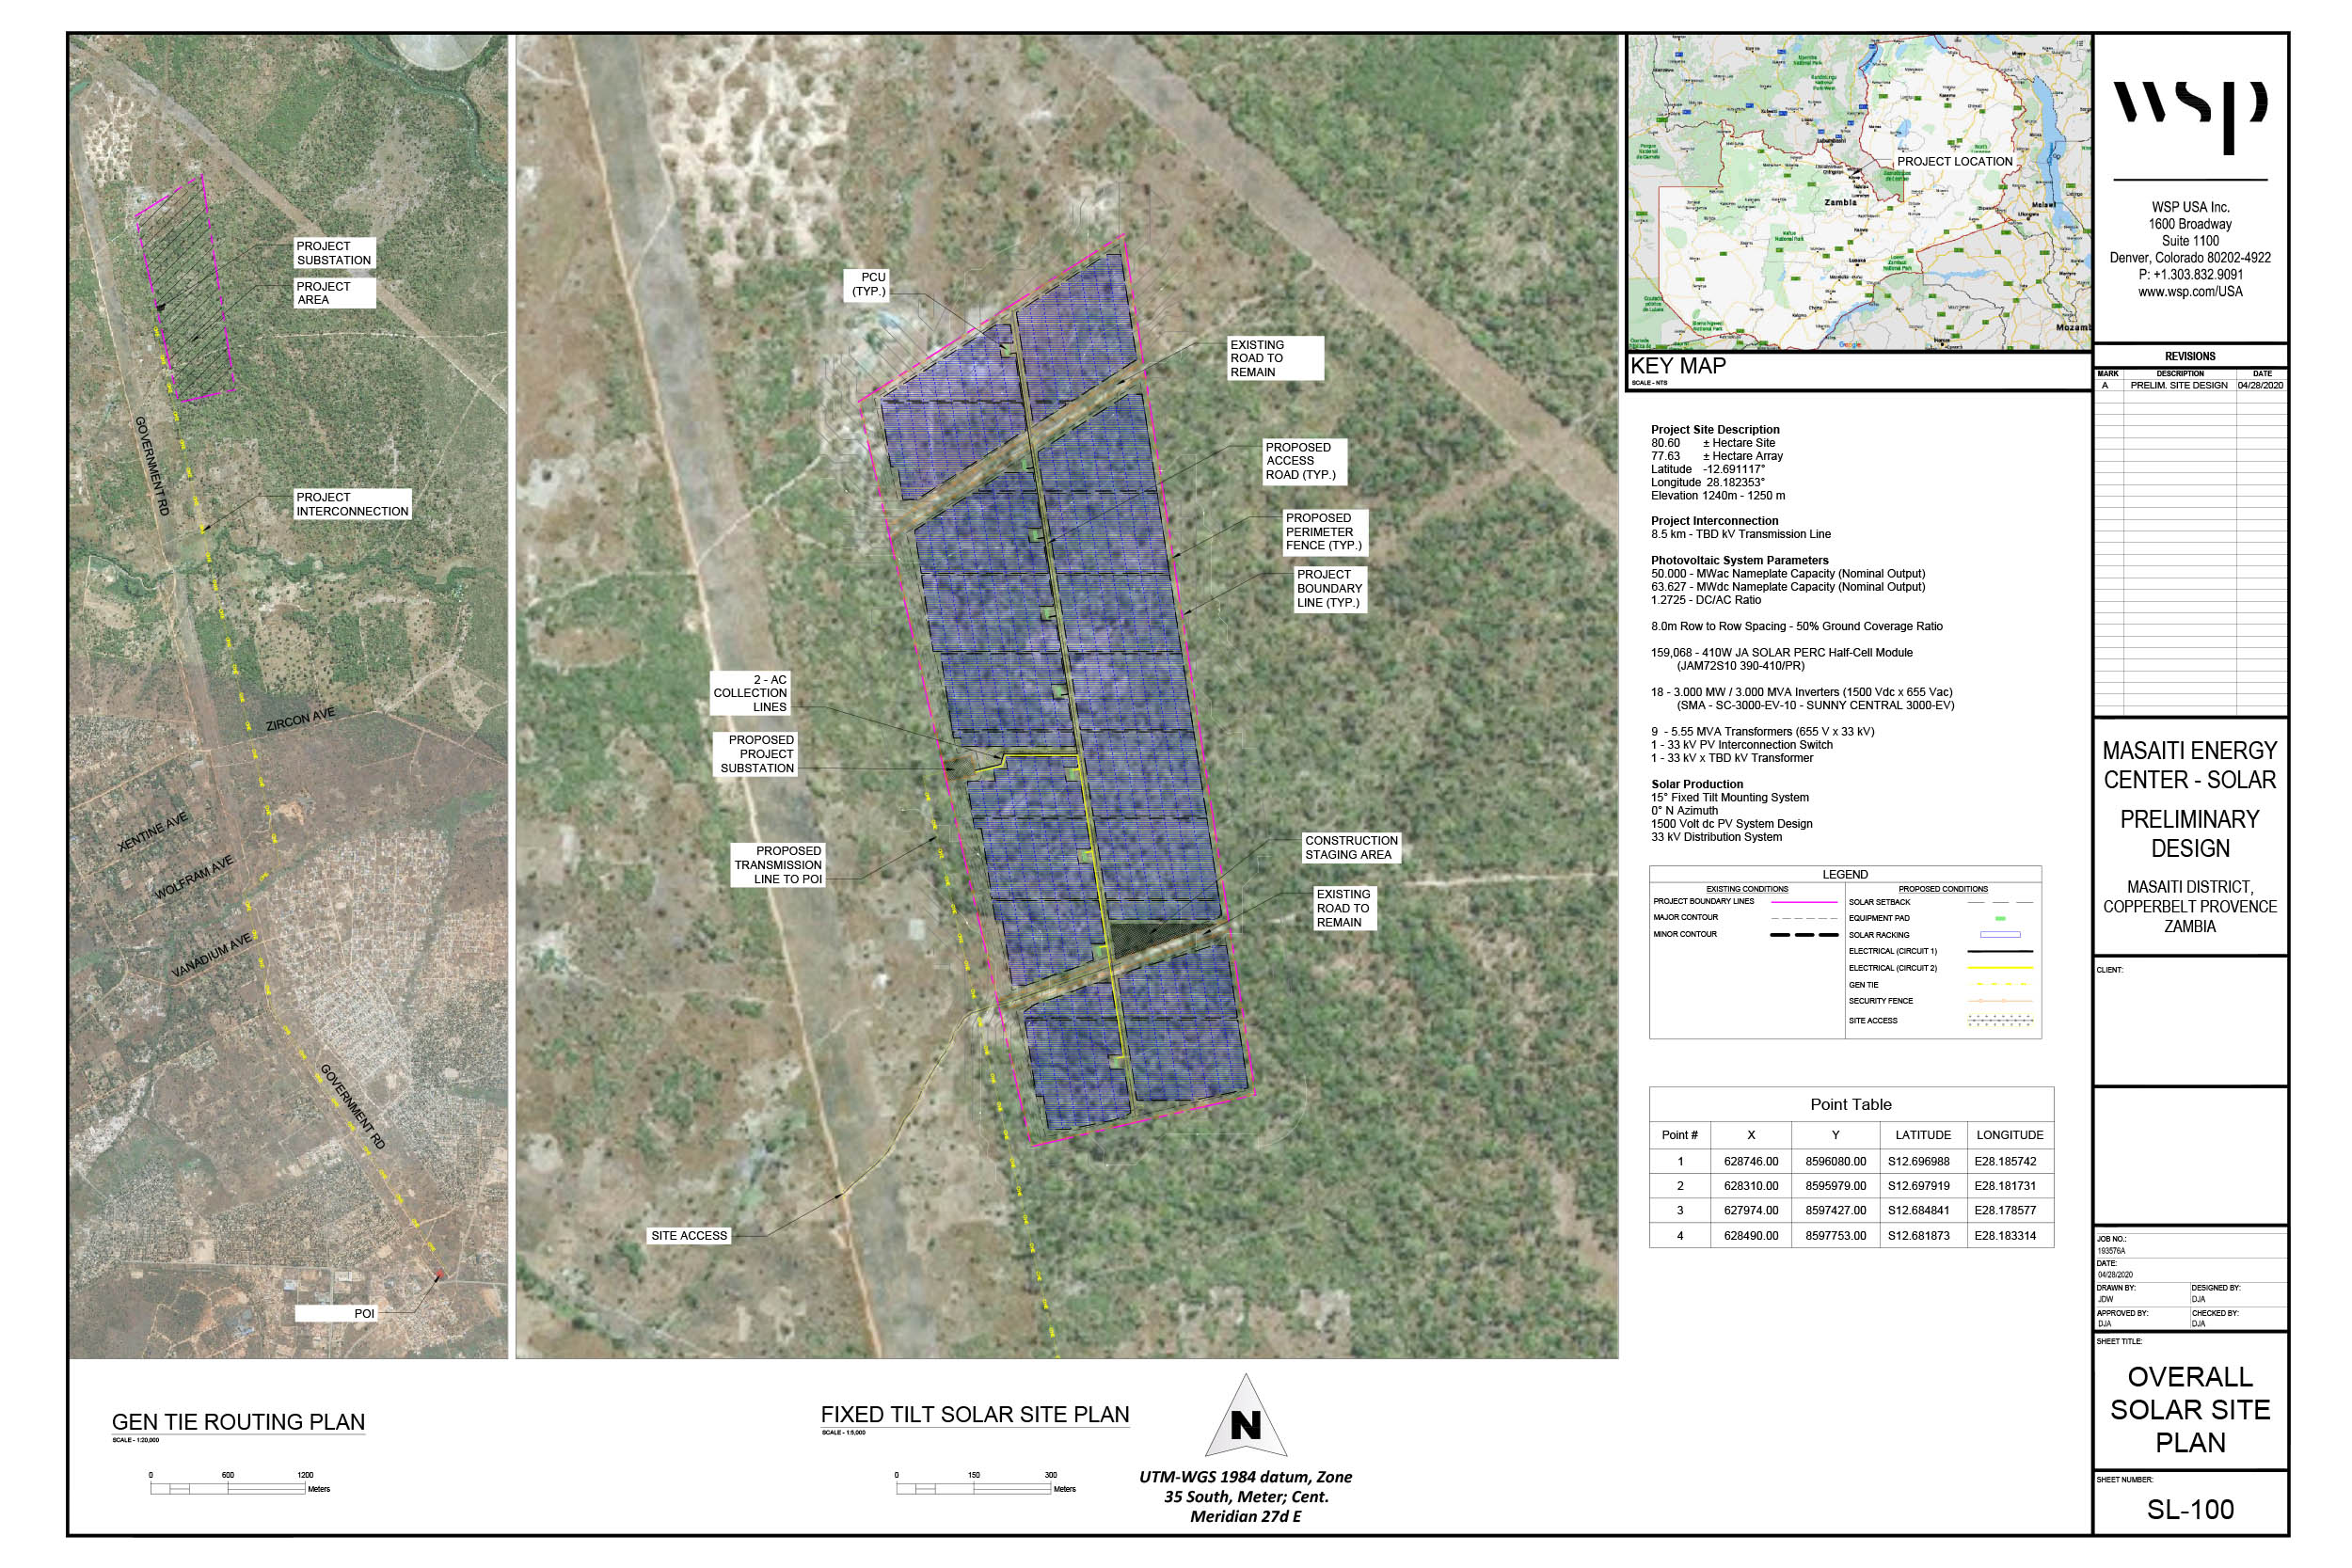 This is a preliminary solar farm and substation layout for the 50MW solar farm in Kitwe adjacent to a CEC right of way and near a CEC substation.